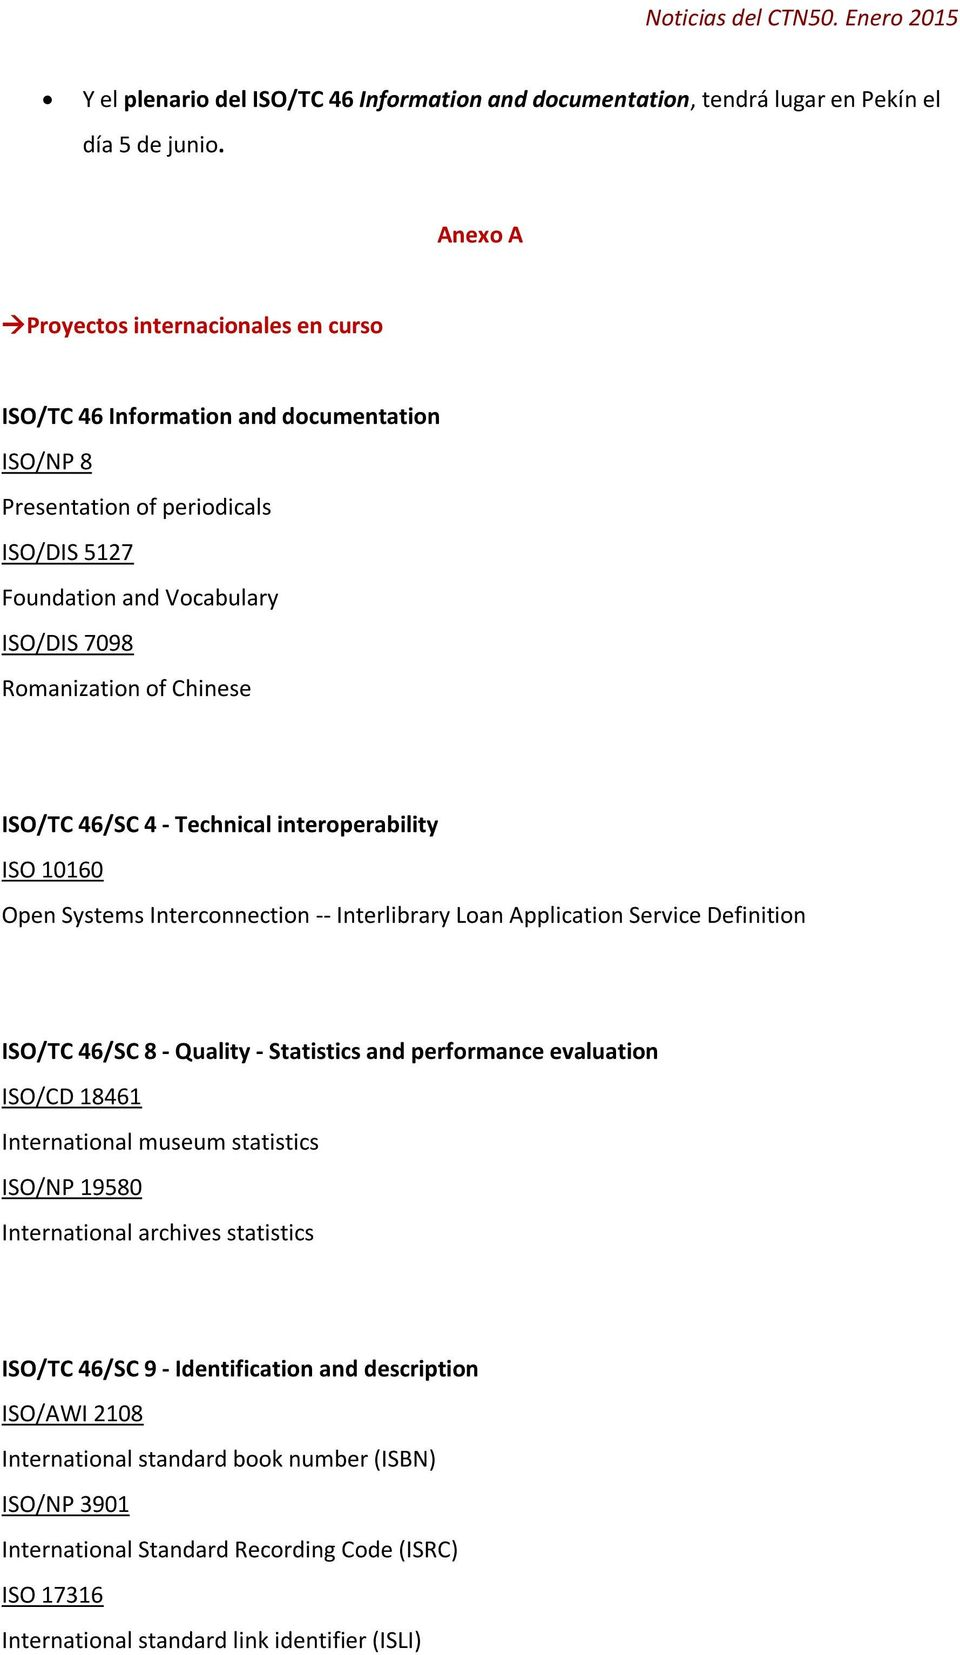 ISO/TC 46/SC 4 - Technical interoperability ISO 10160 Open Systems Interconnection -- Interlibrary Loan Application Service Definition ISO/TC 46/SC 8 - Quality - Statistics and performance evaluation